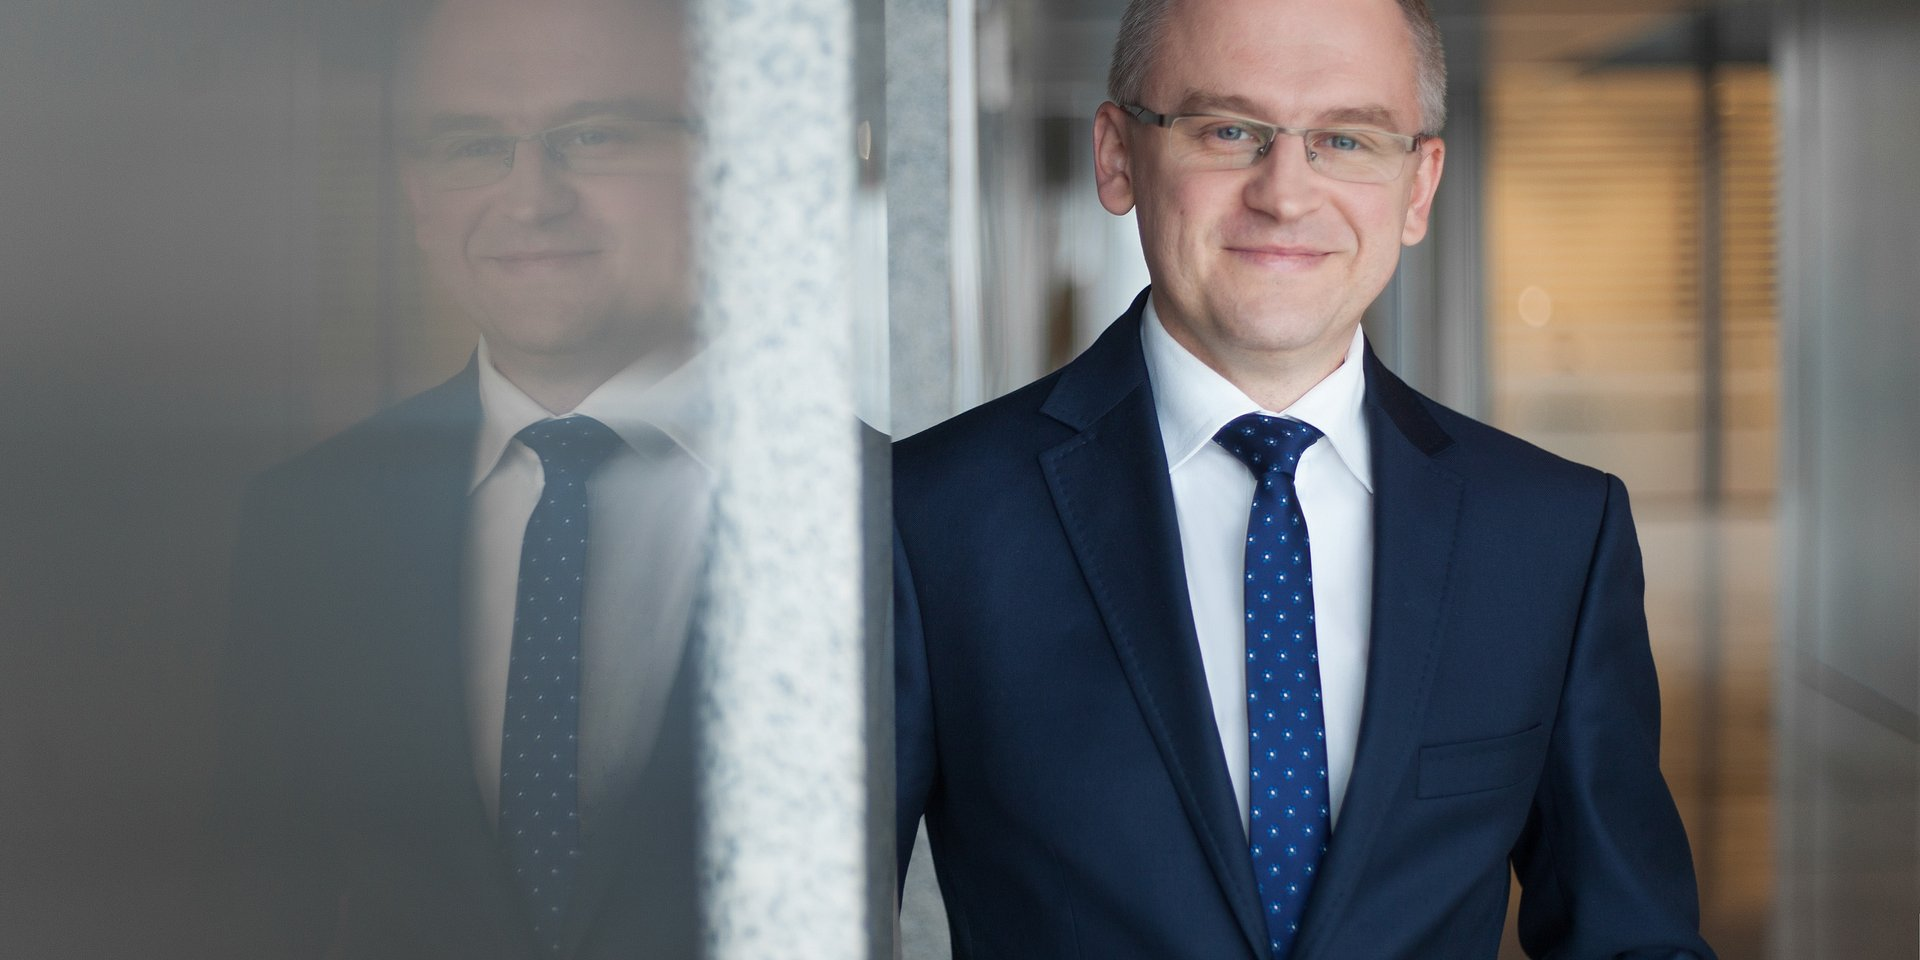 CBRE POLAND STRENGTHENS THE CAPITAL MARKETS TEAM WITH NEW APPOINTMENT